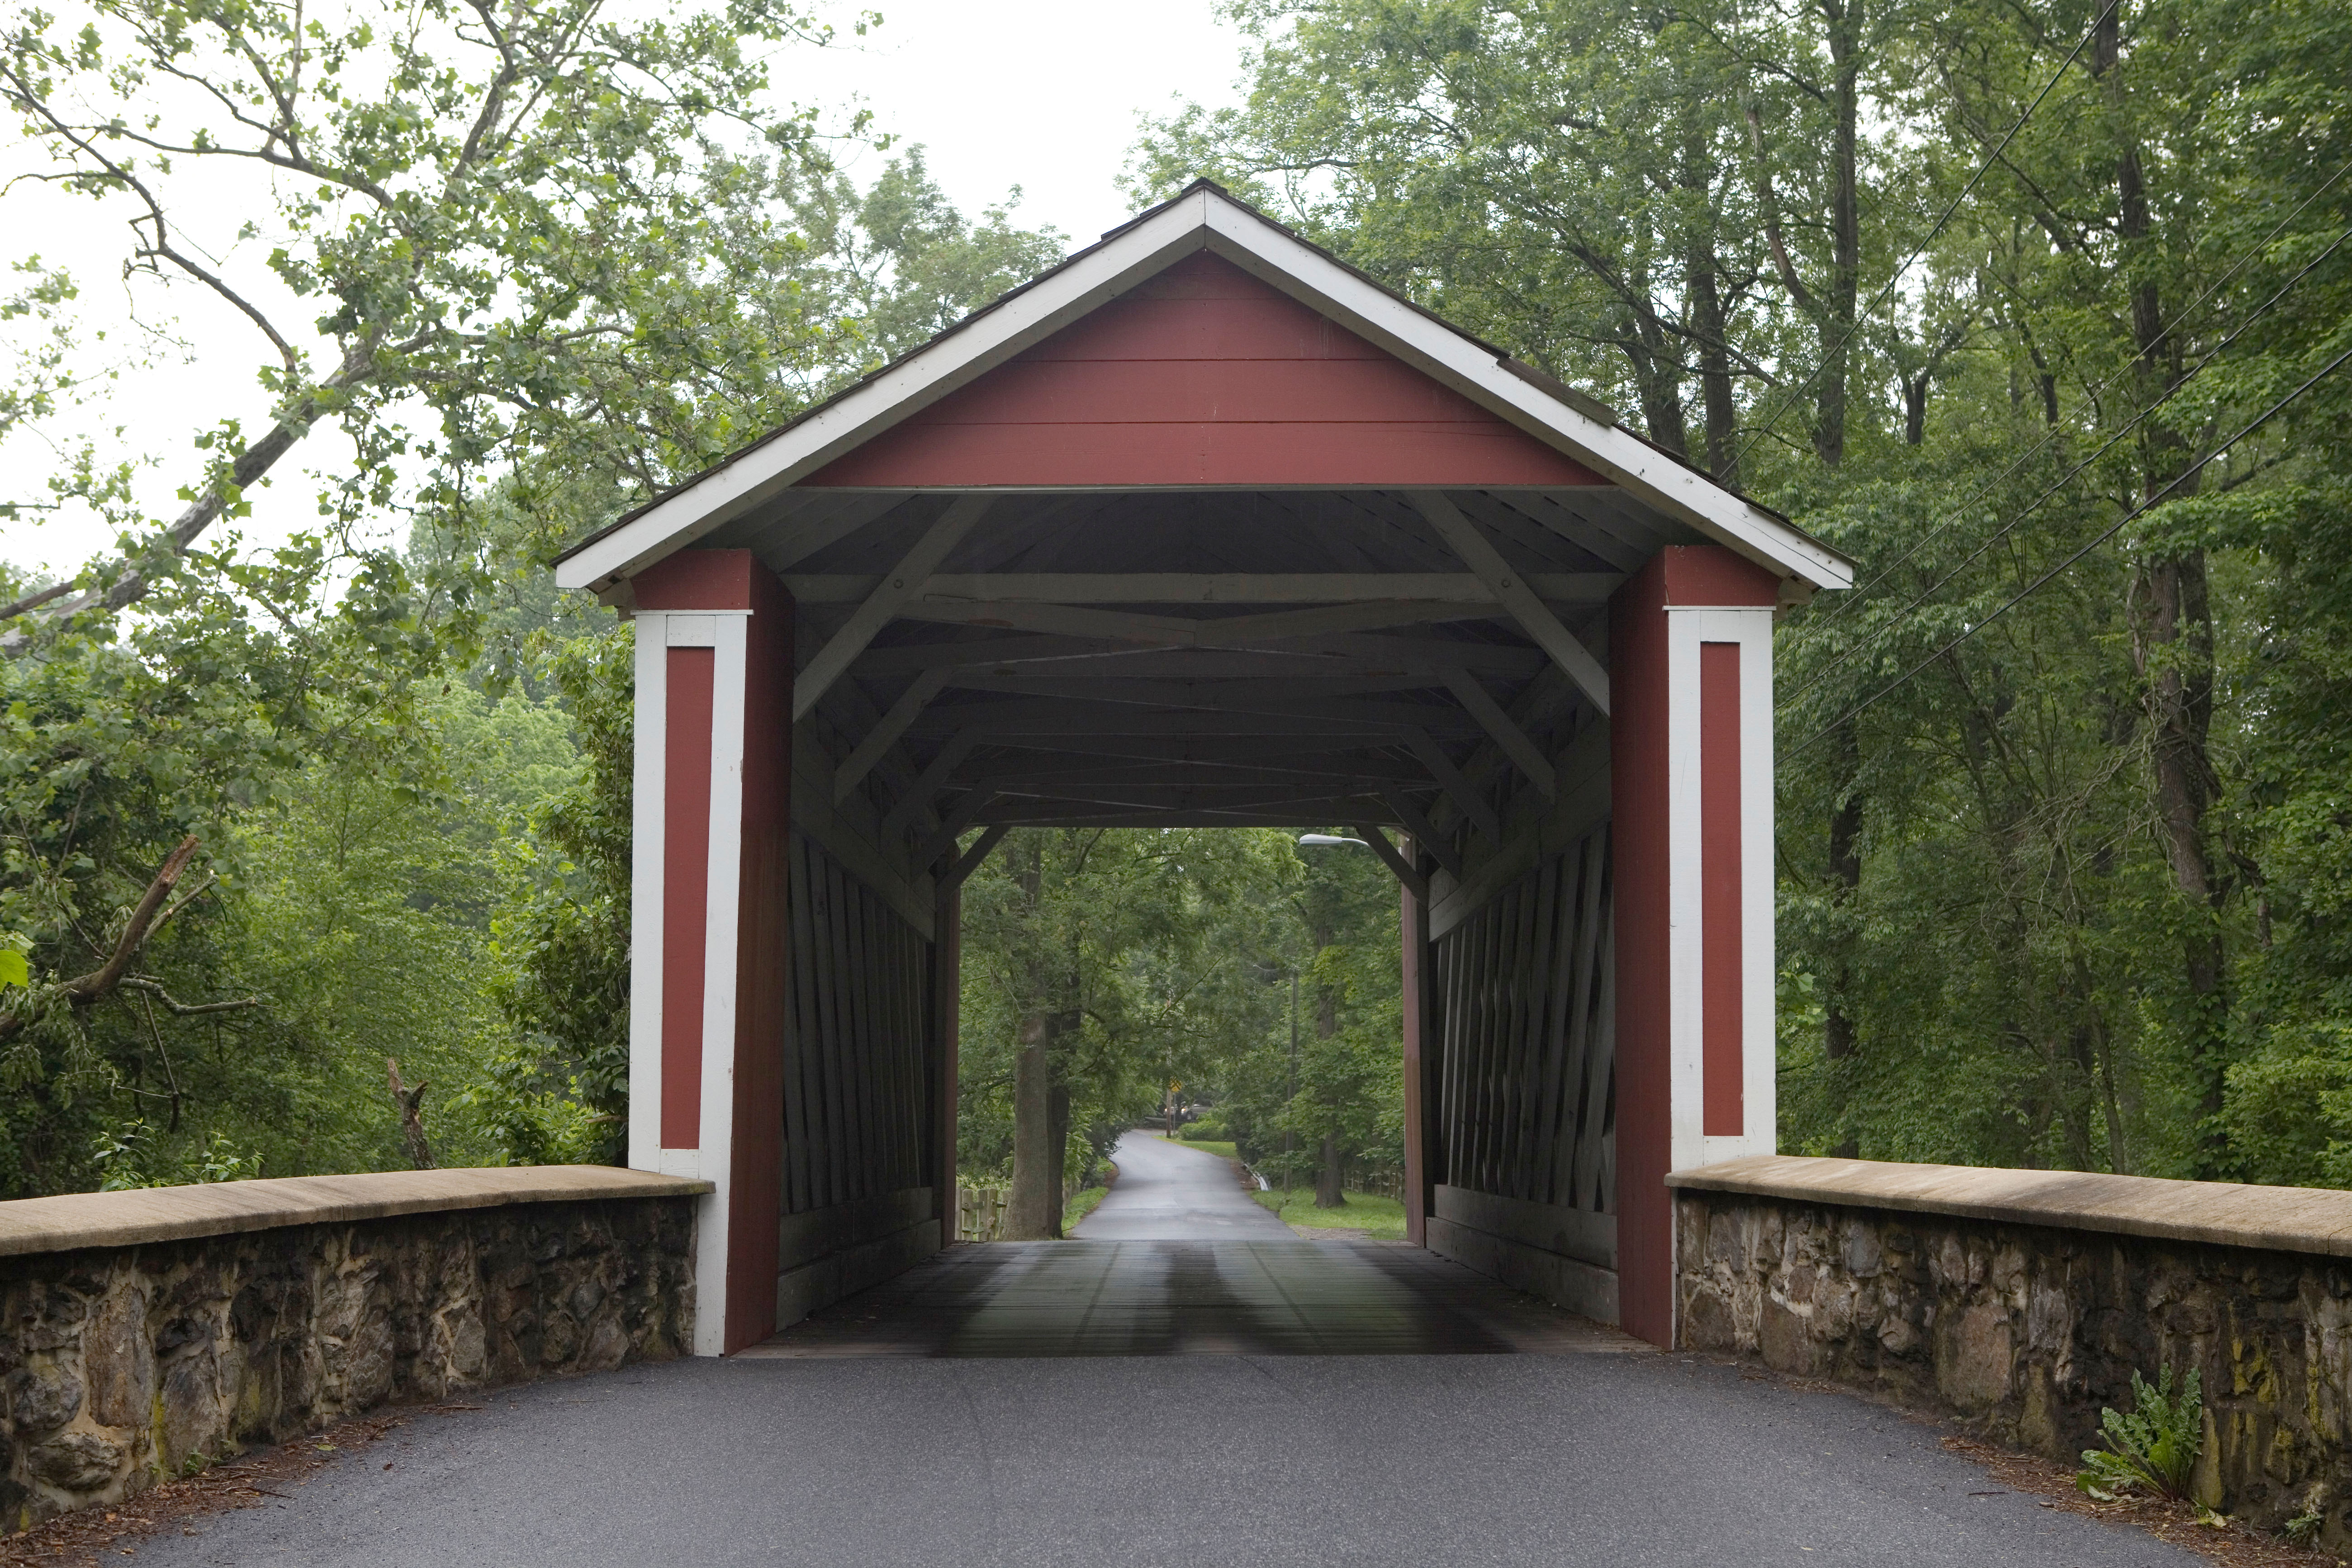 Ashland Covered Bridge over Red Clay Creek, Hockessin, Delaware. Photo by Janet Worne